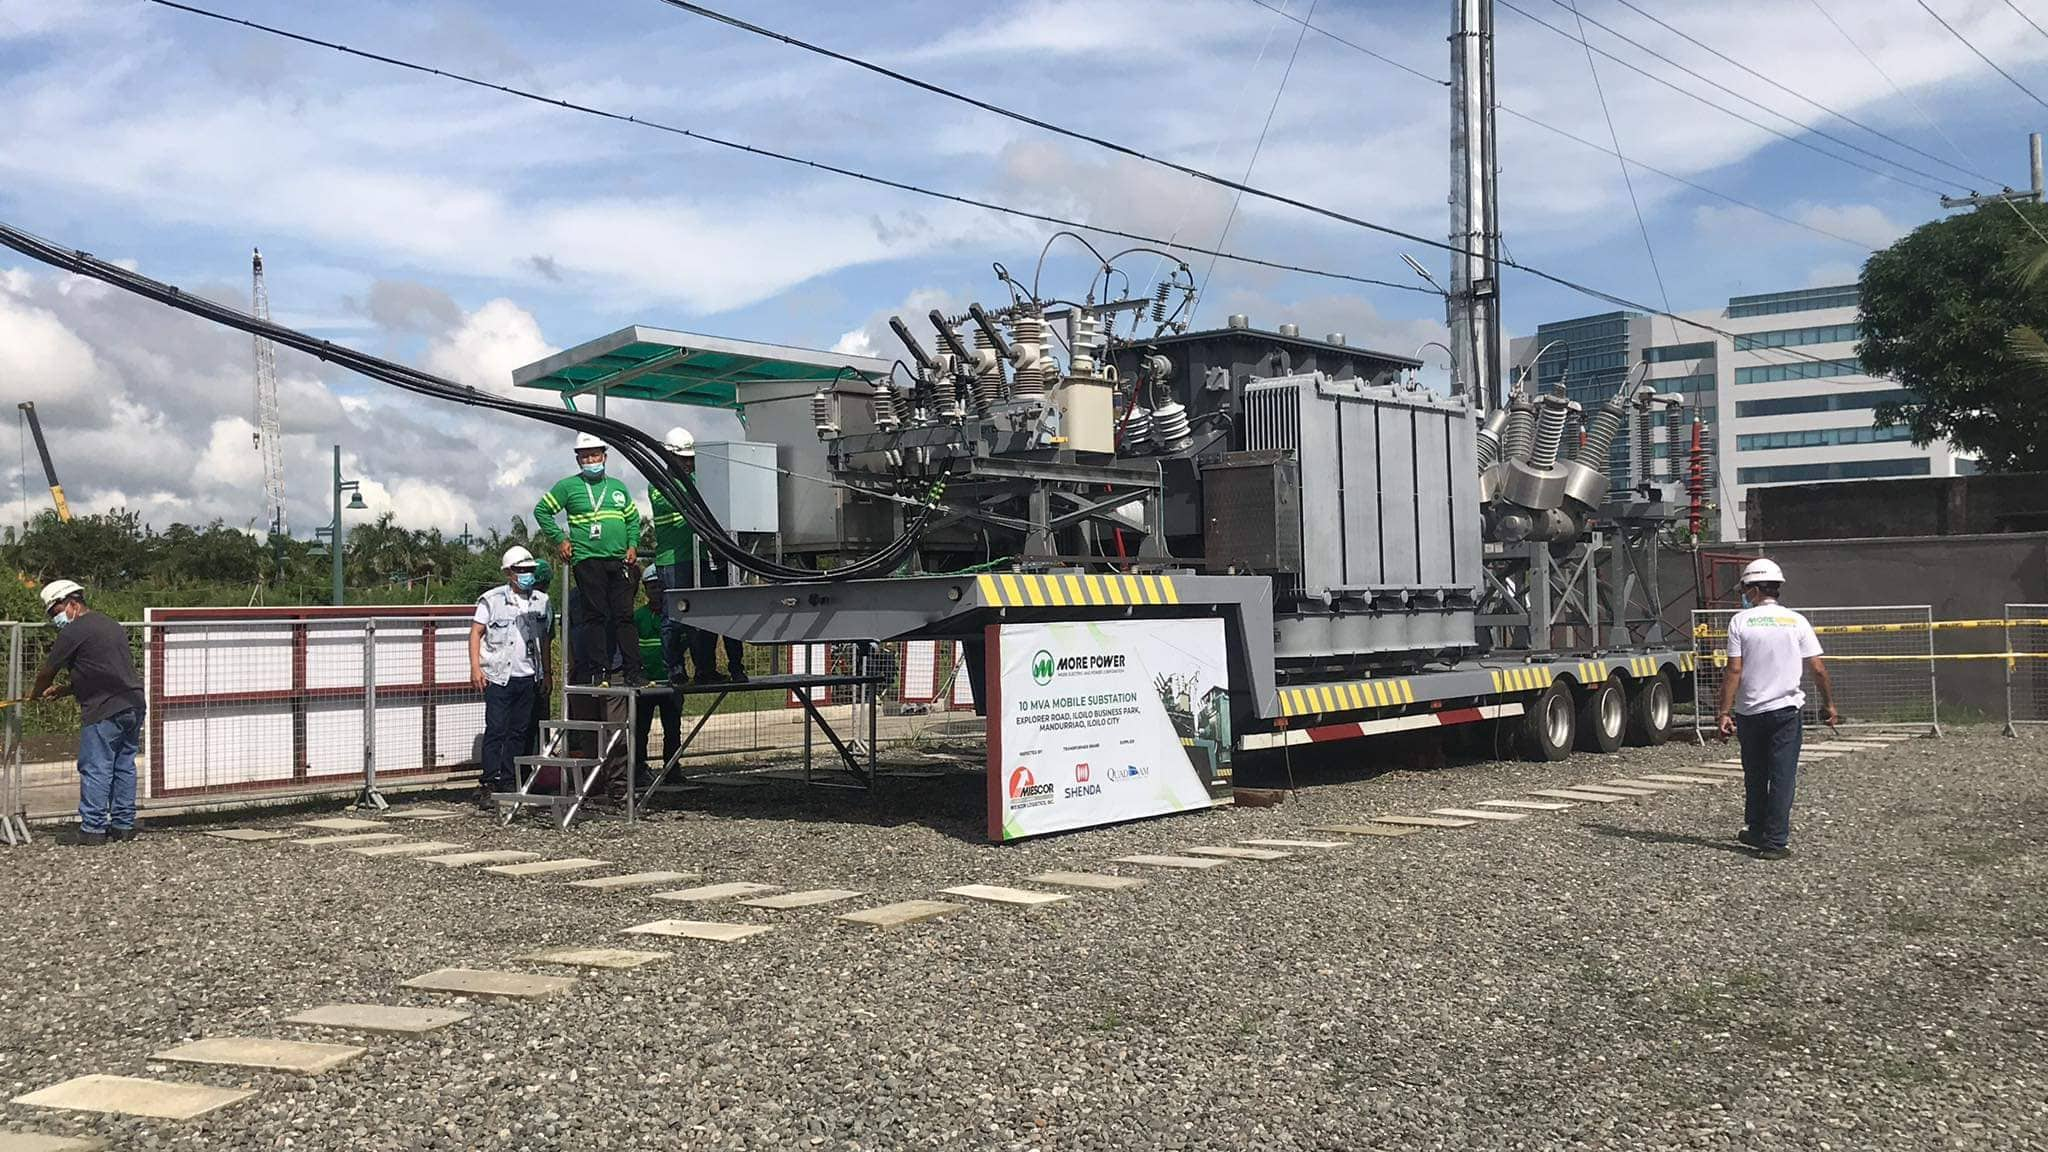 MORE Power 10 MVA mobile substation in Megaworld Iloilo Business Park.